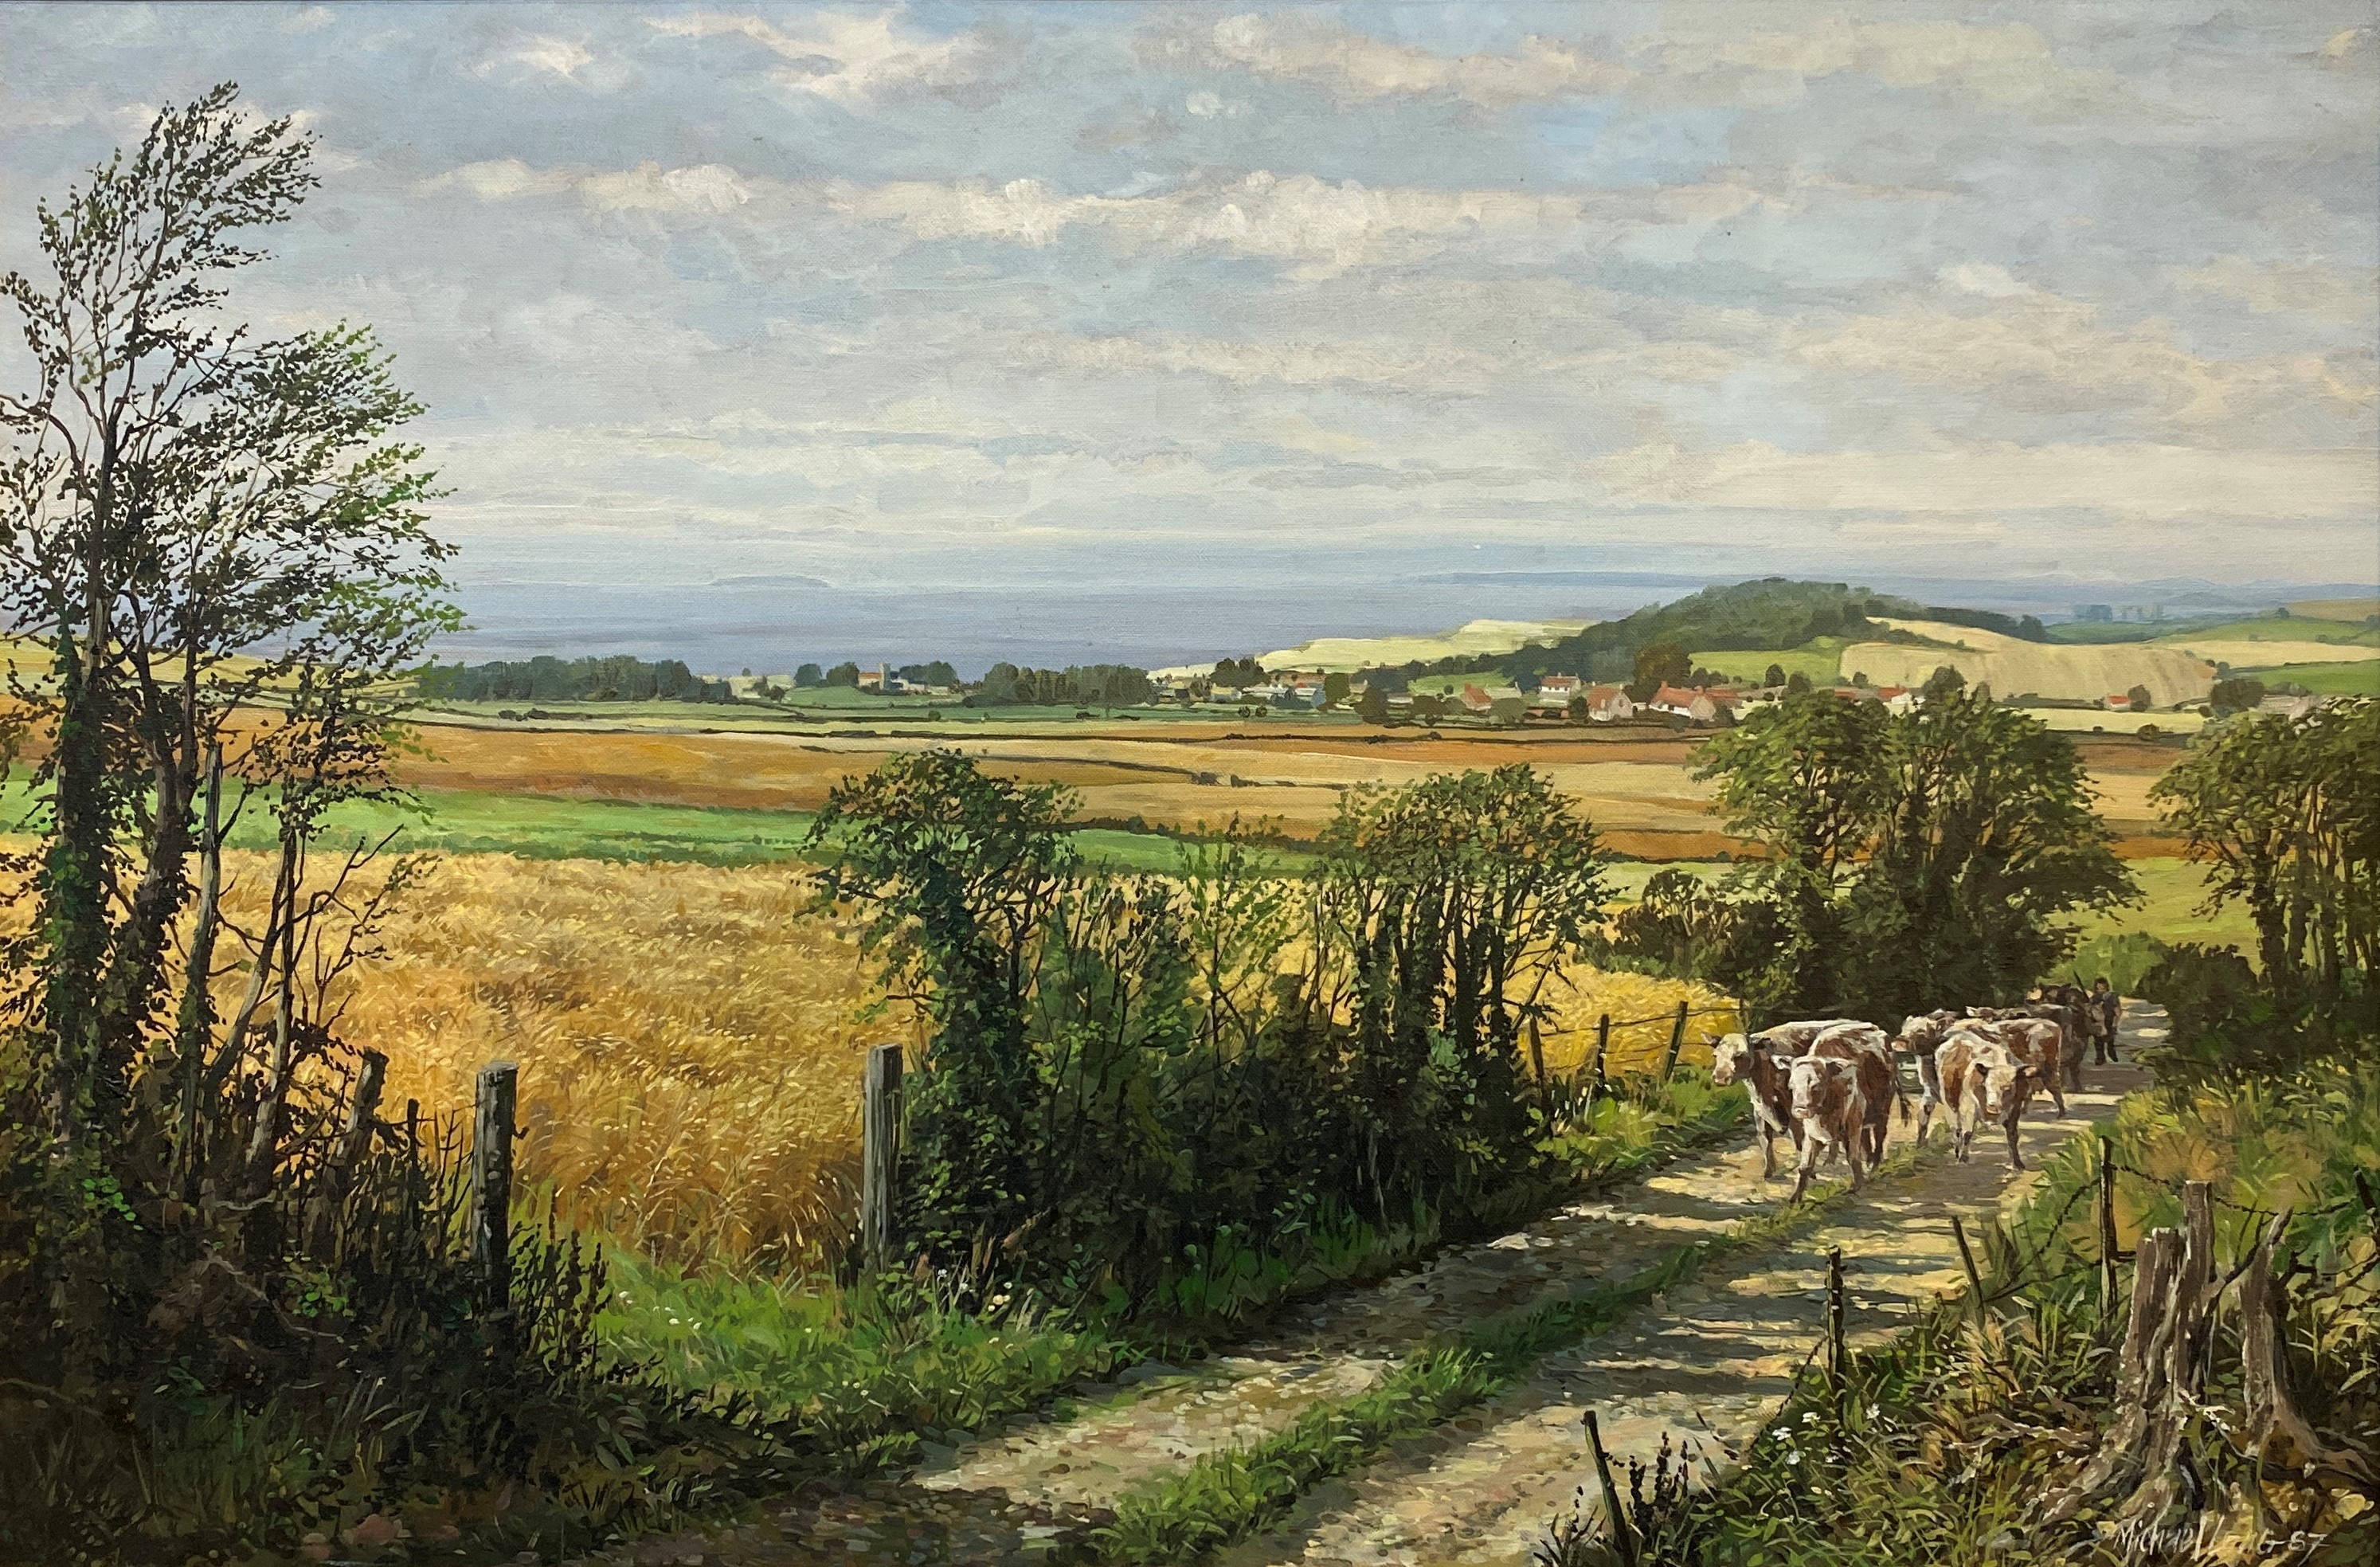 Lot 48 - Michael Long - 'The View to East Quantox Head, Somerset', acrylic on canvas, (49cm x 74.5cm), signed